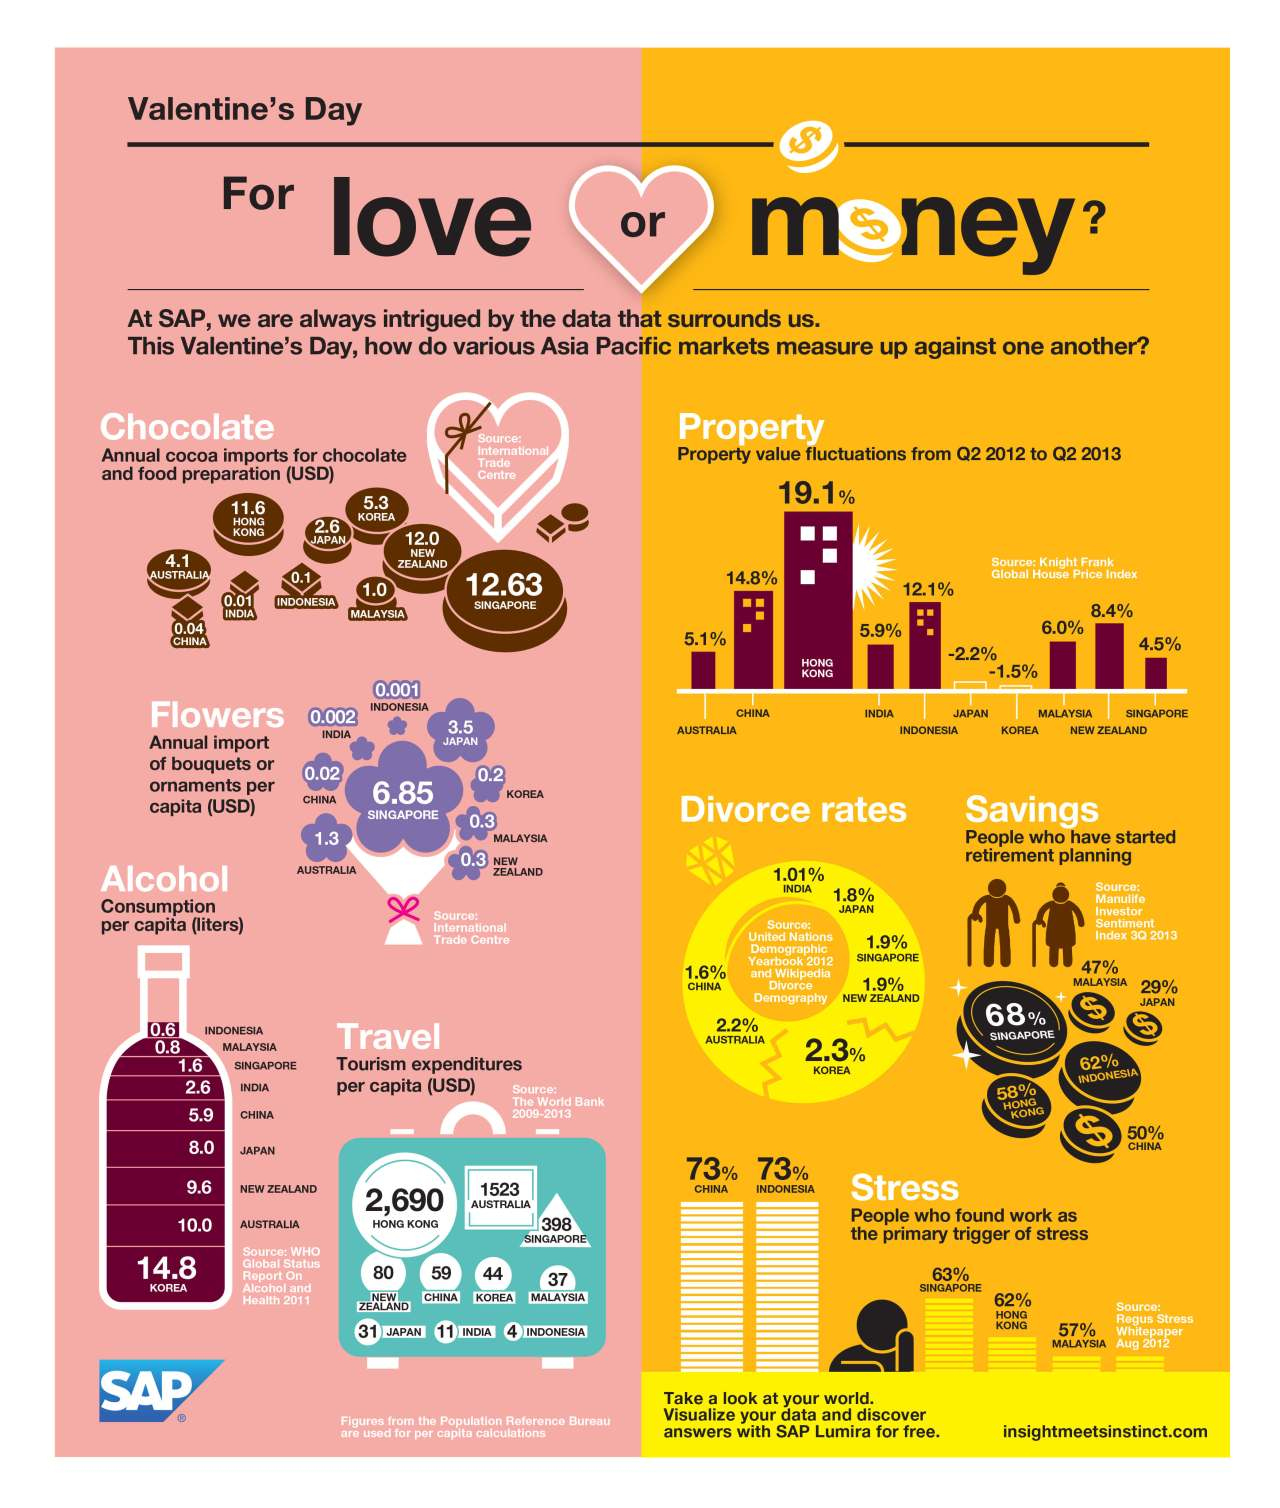 Valentine's Day: For love or money?